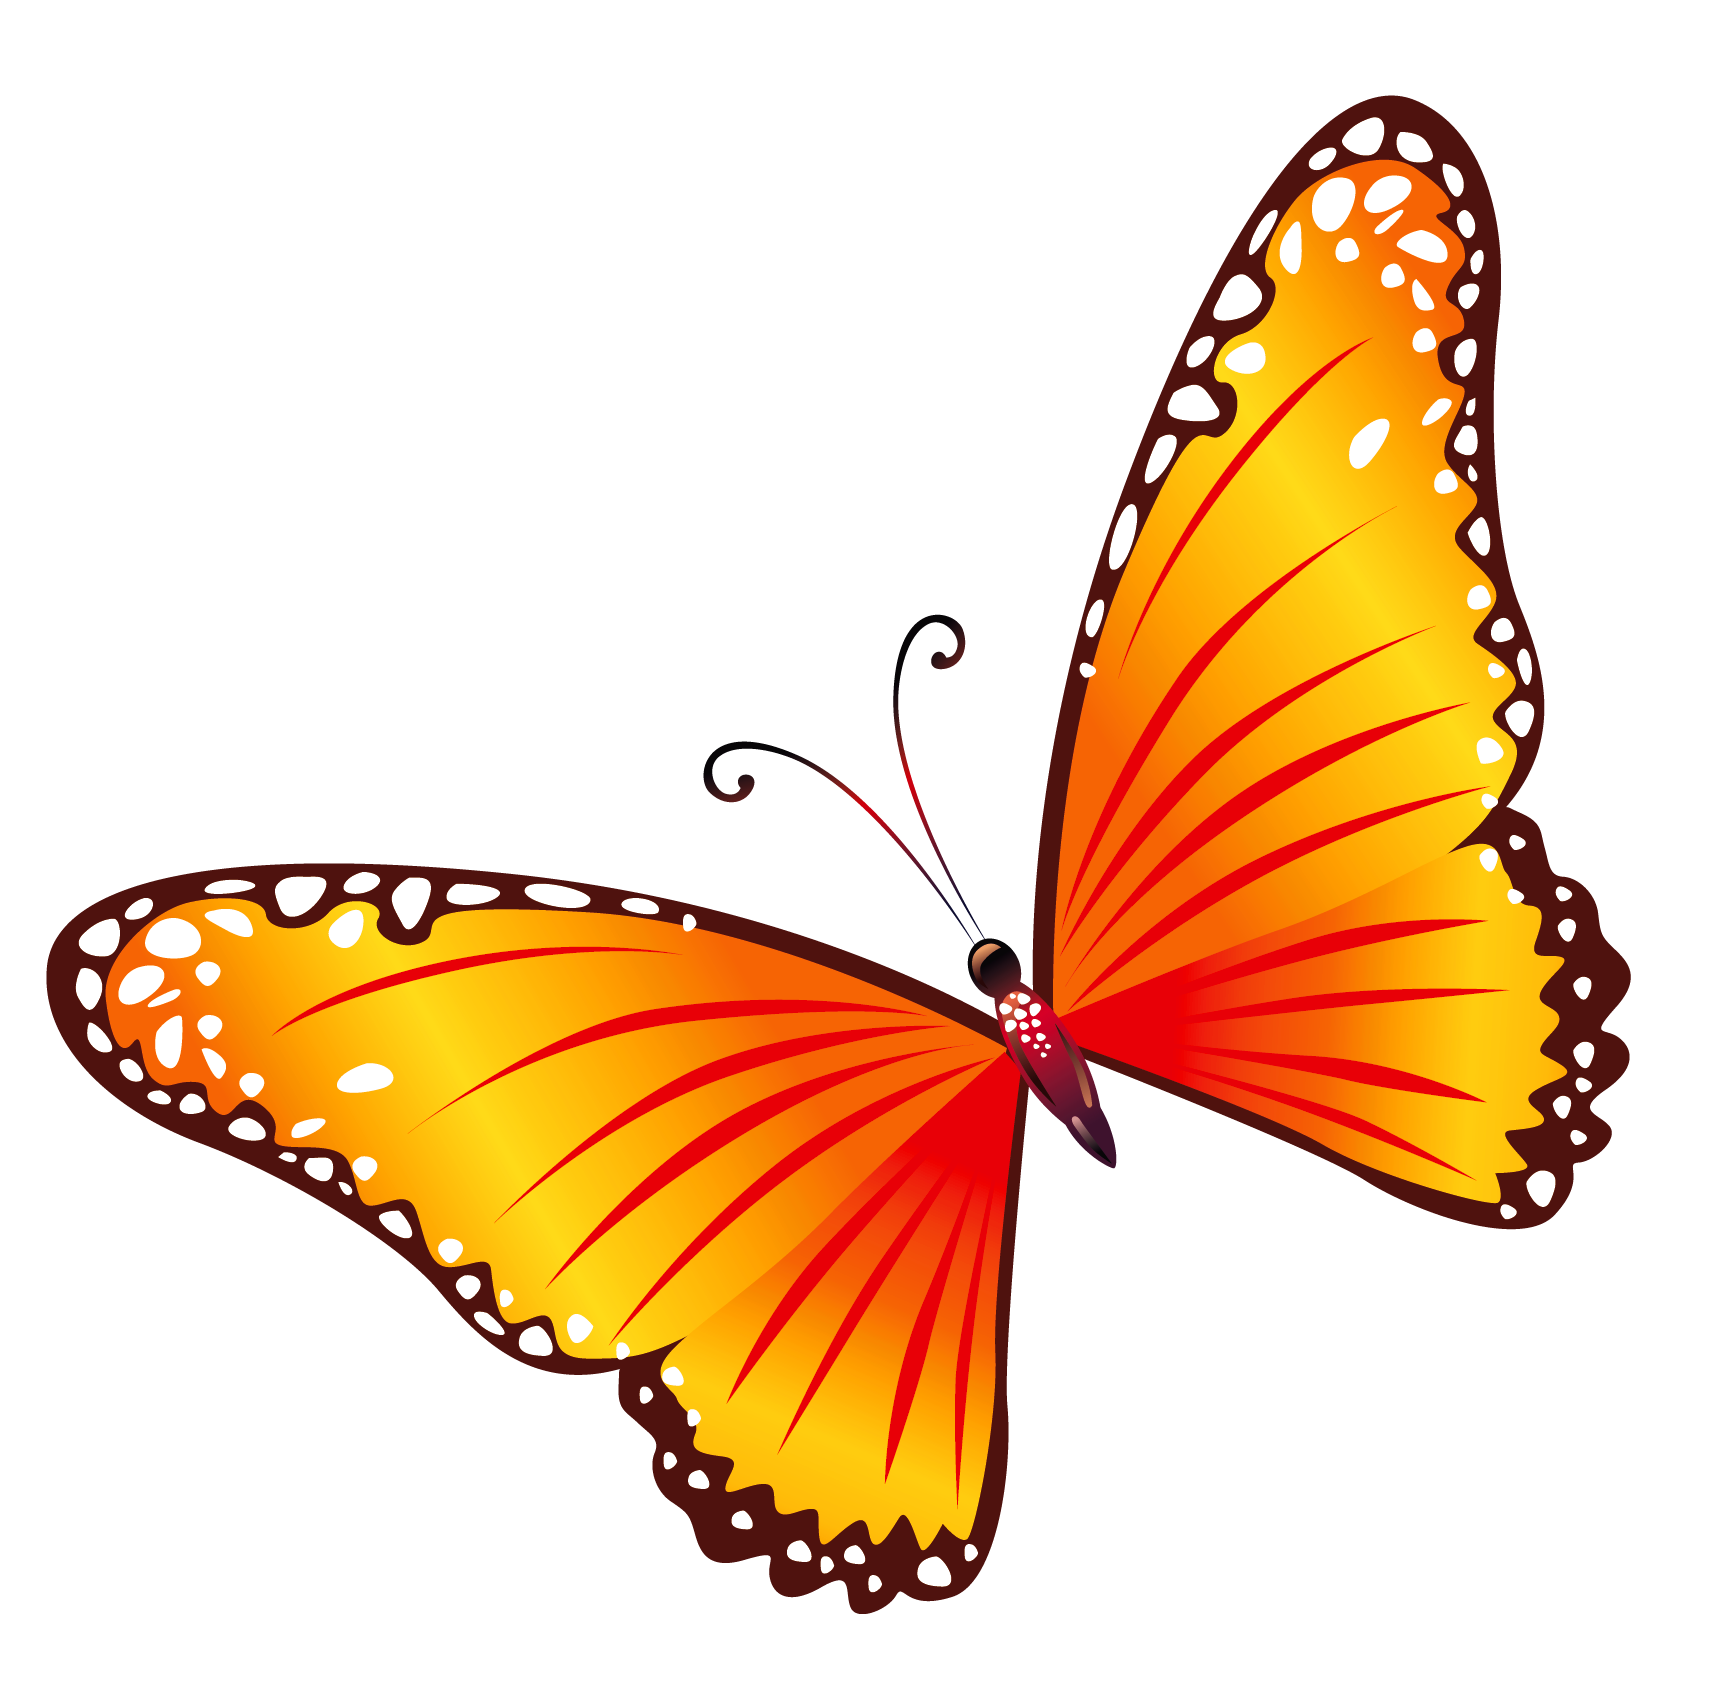 Flying Butterflies Png - ClipArt Best